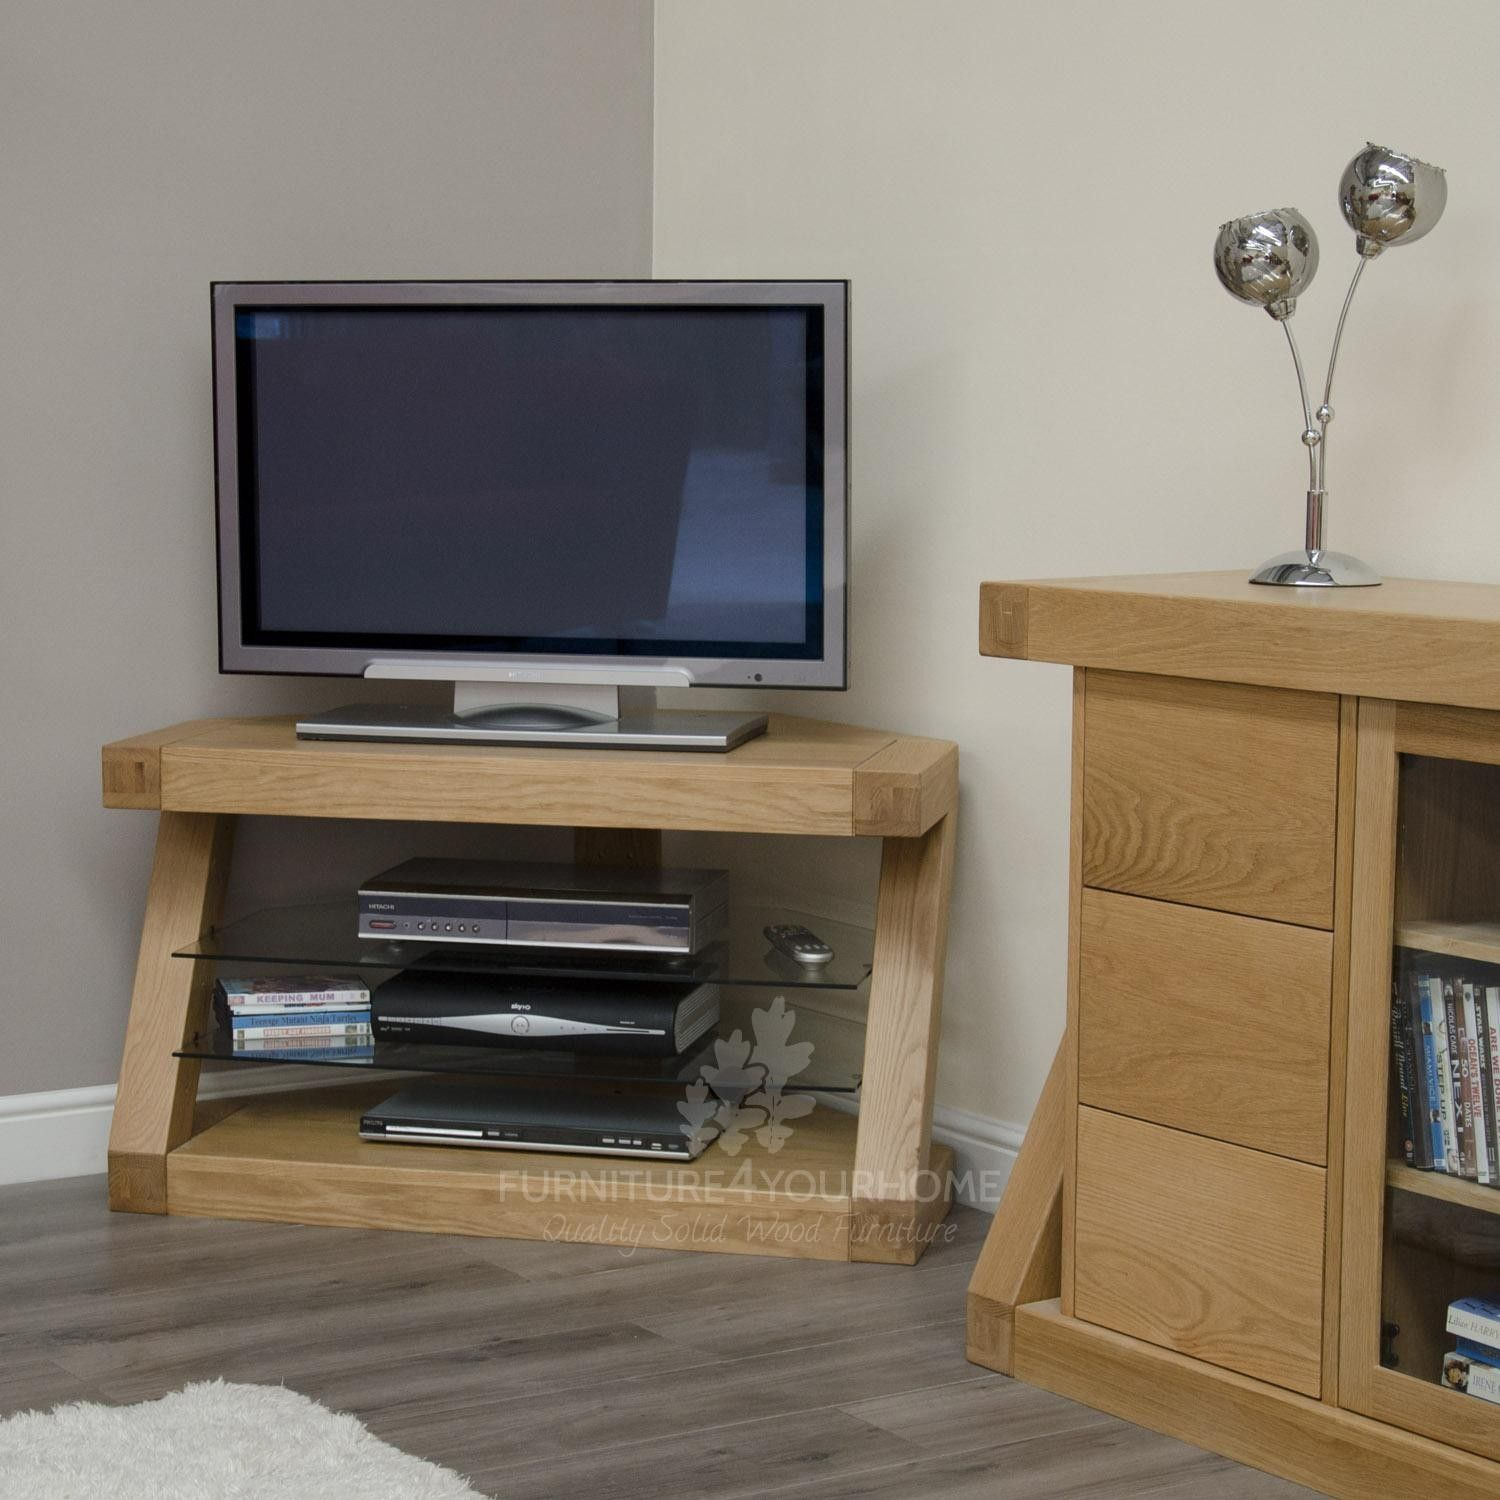 z solid oak designer corner tv unit | for the home | pinterest